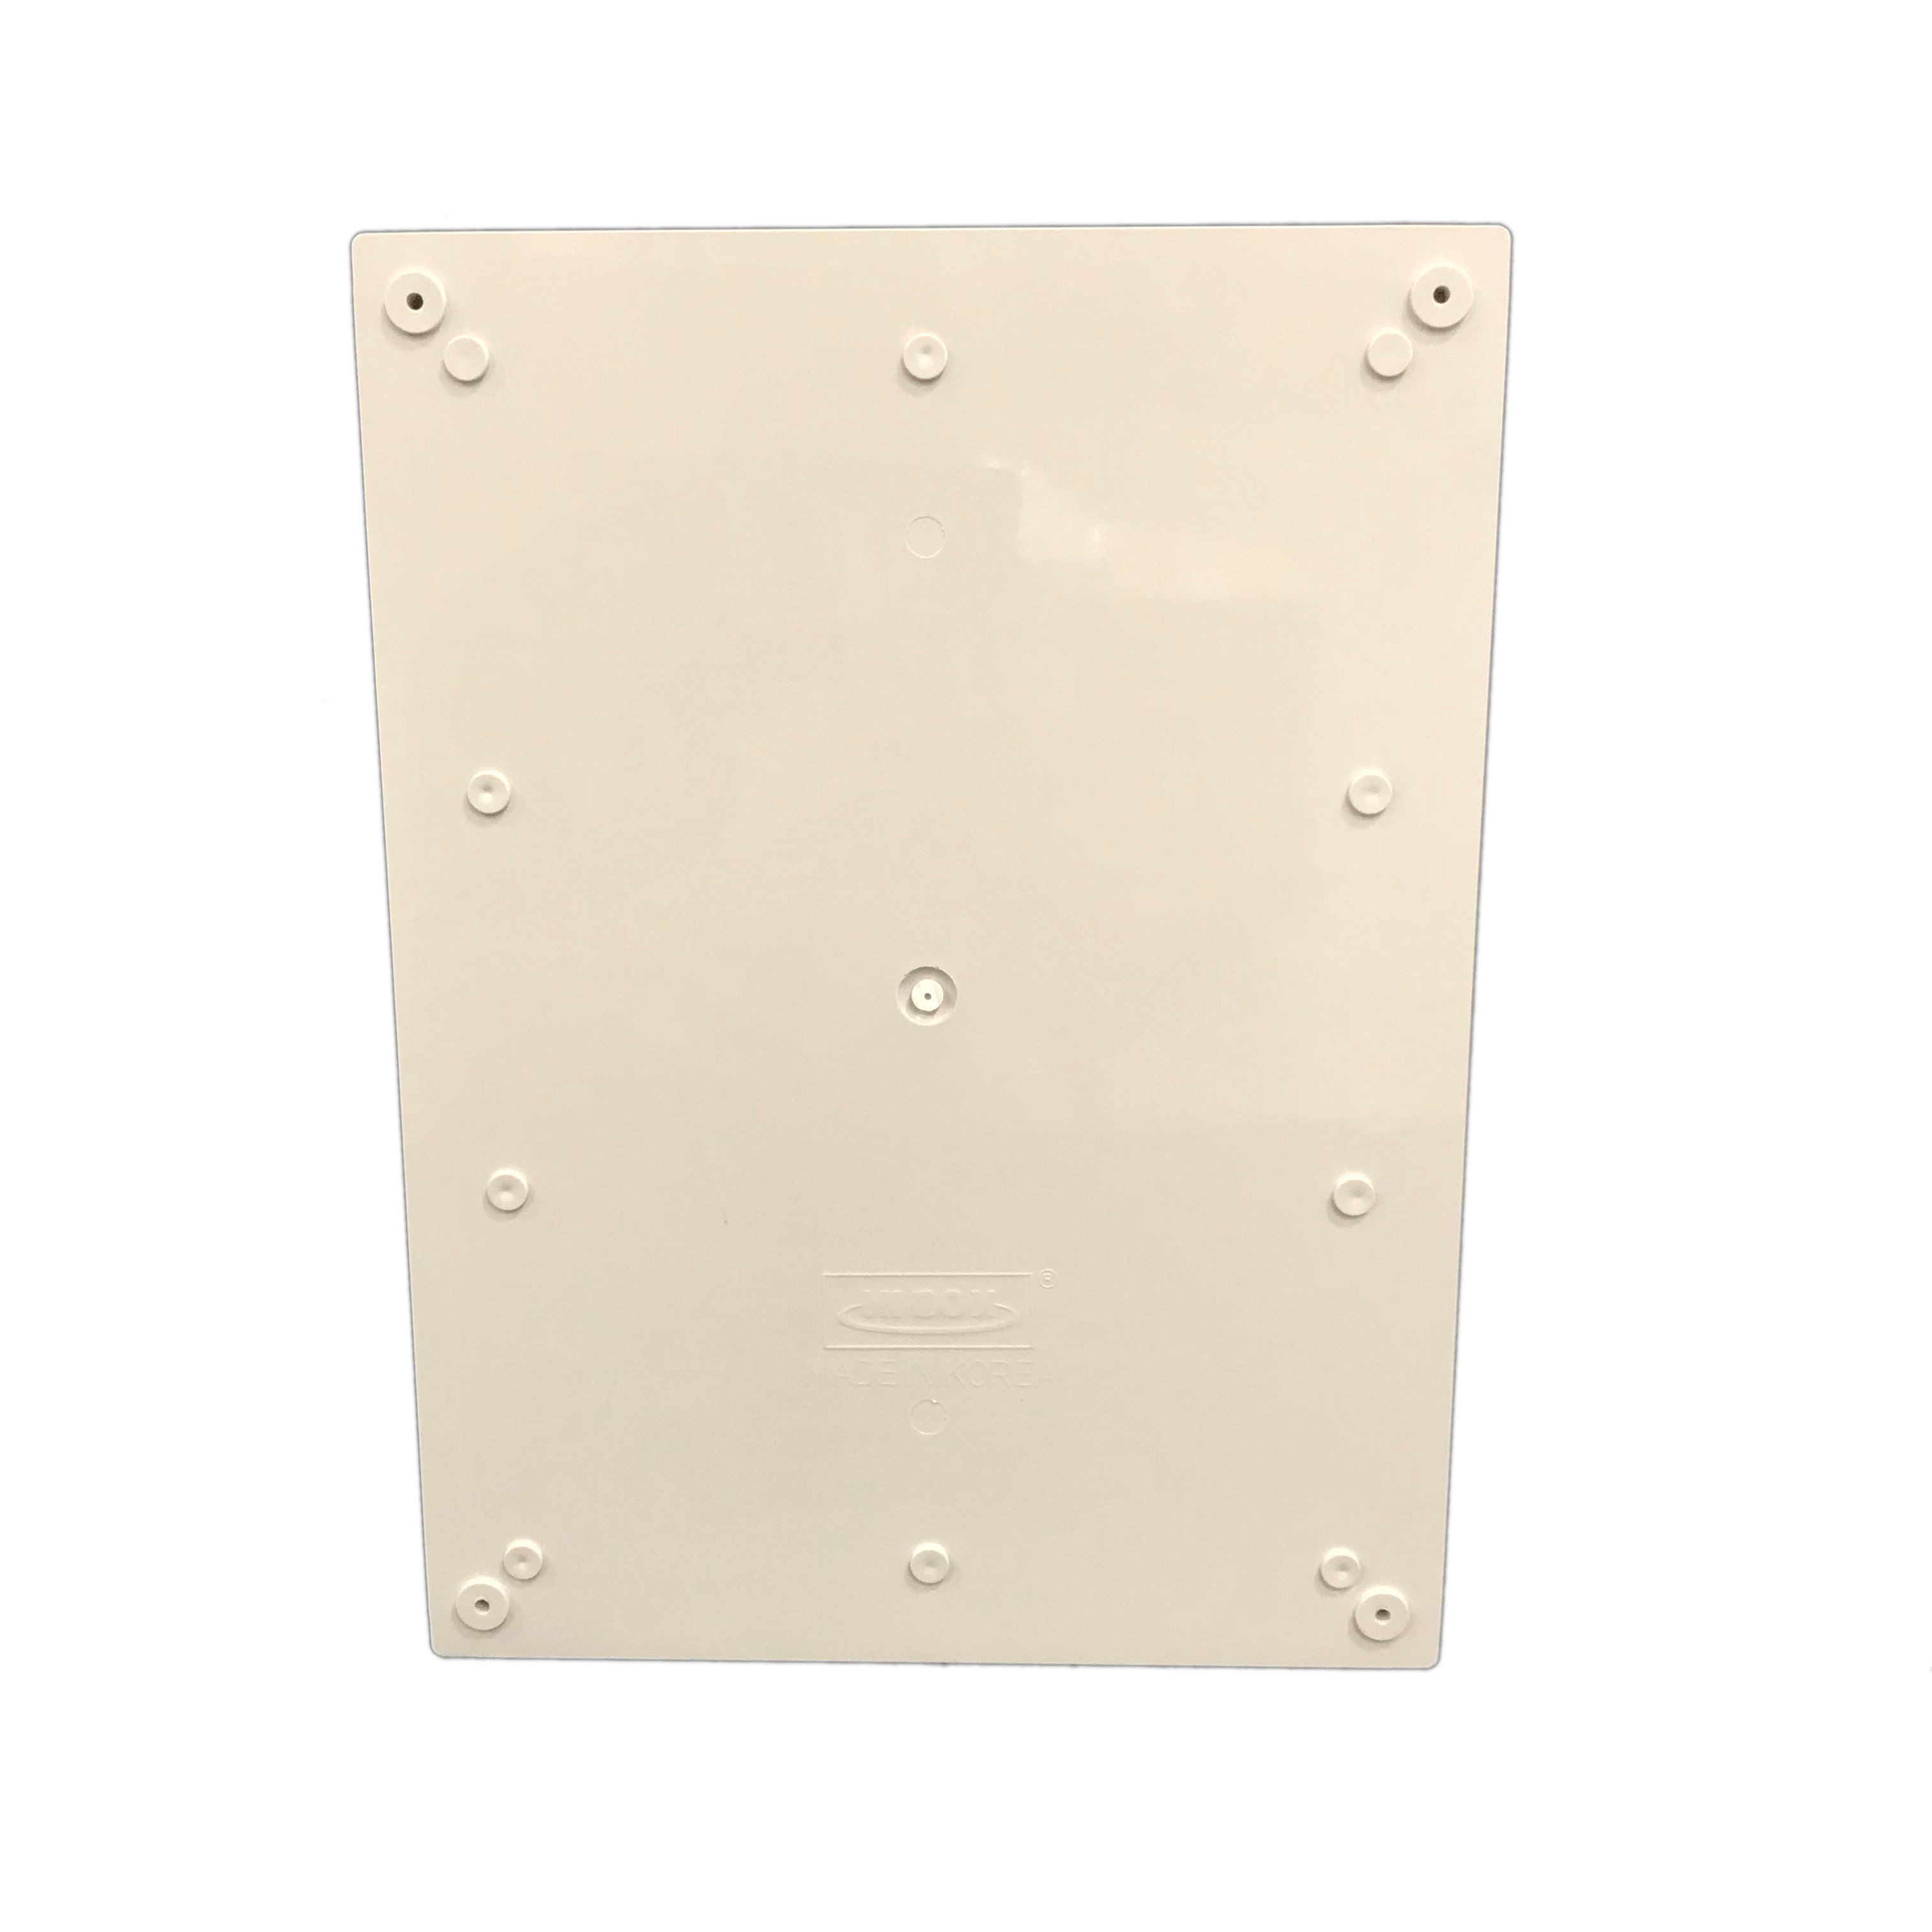 Light Gray Finish BUD Industries NBF-32026 Plastic ABS NEMA Economy Box with Solid Door 15-47//64 Length x 11-51//64 Width x 6-9//32 Height Four Pack